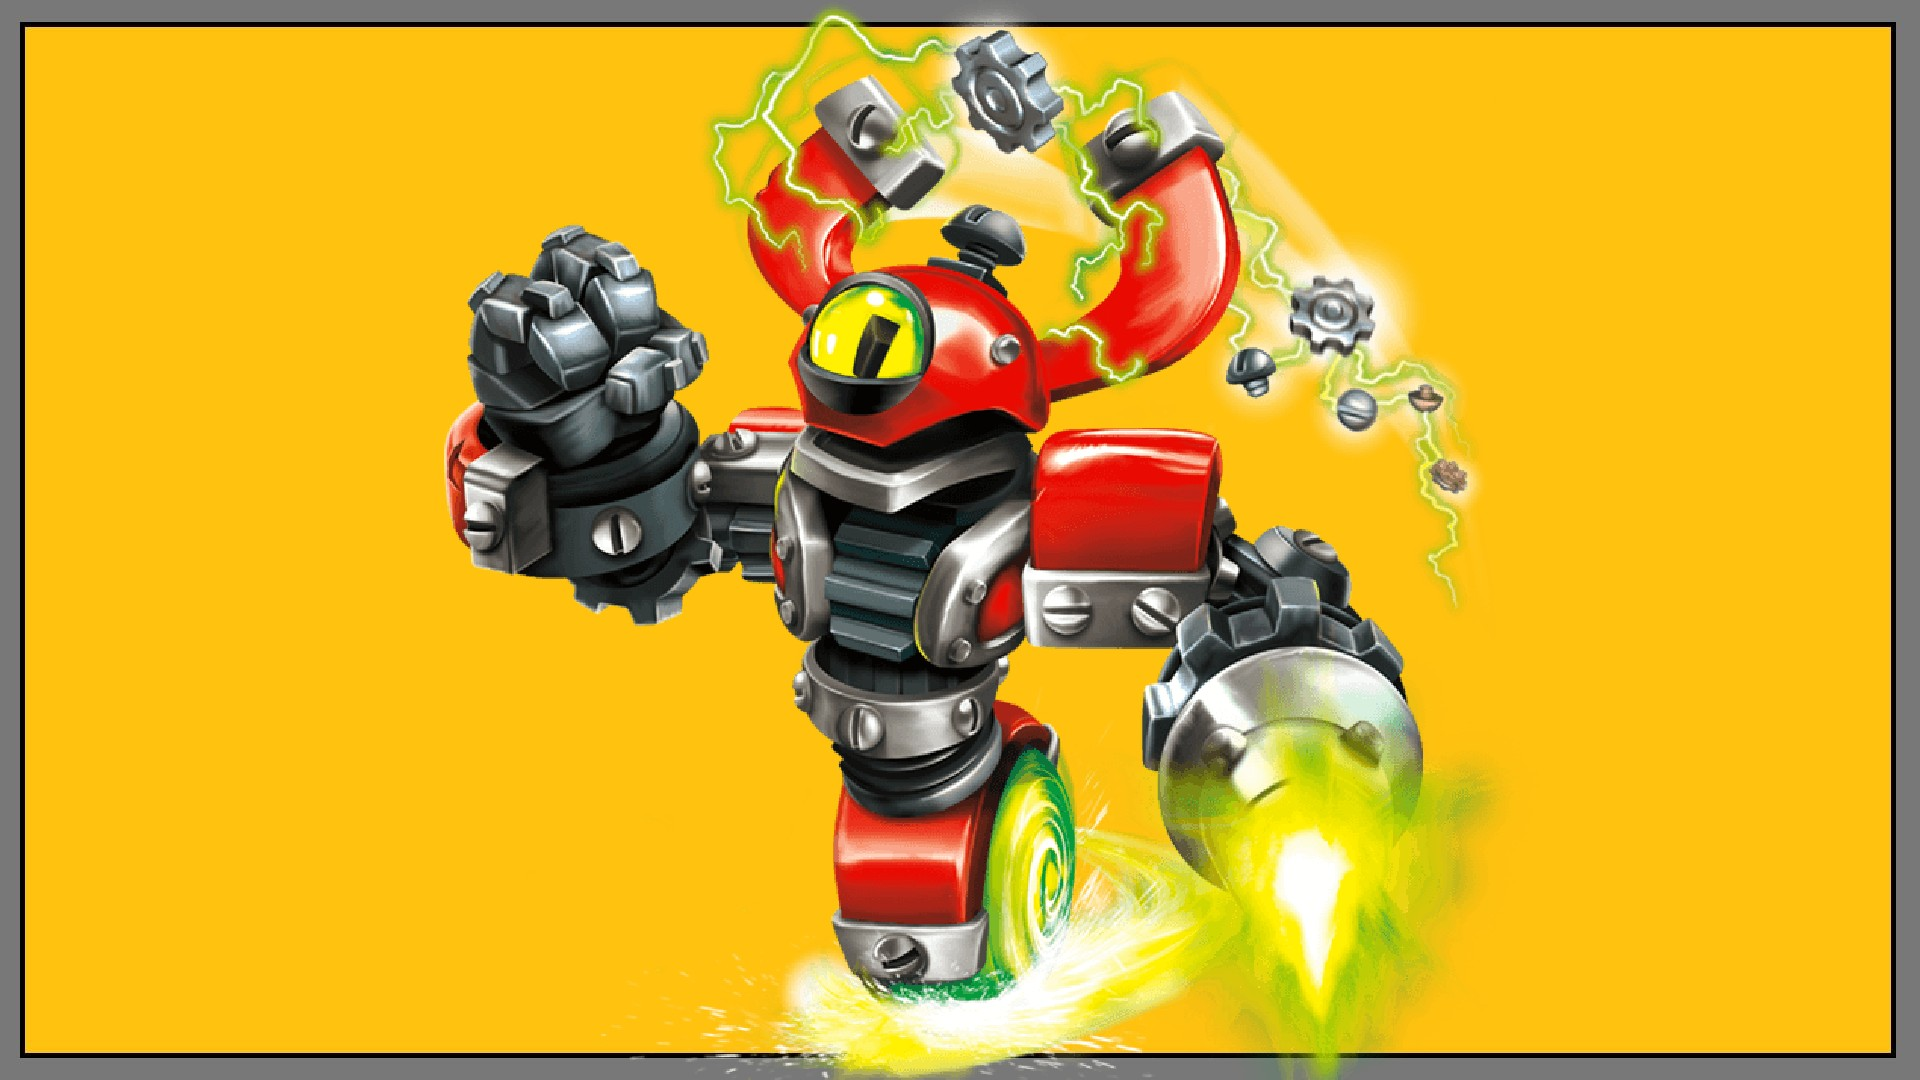 Uncategorized Skylanders Swap Force.com skylanders swap force images sf hd wallpaper and background photos